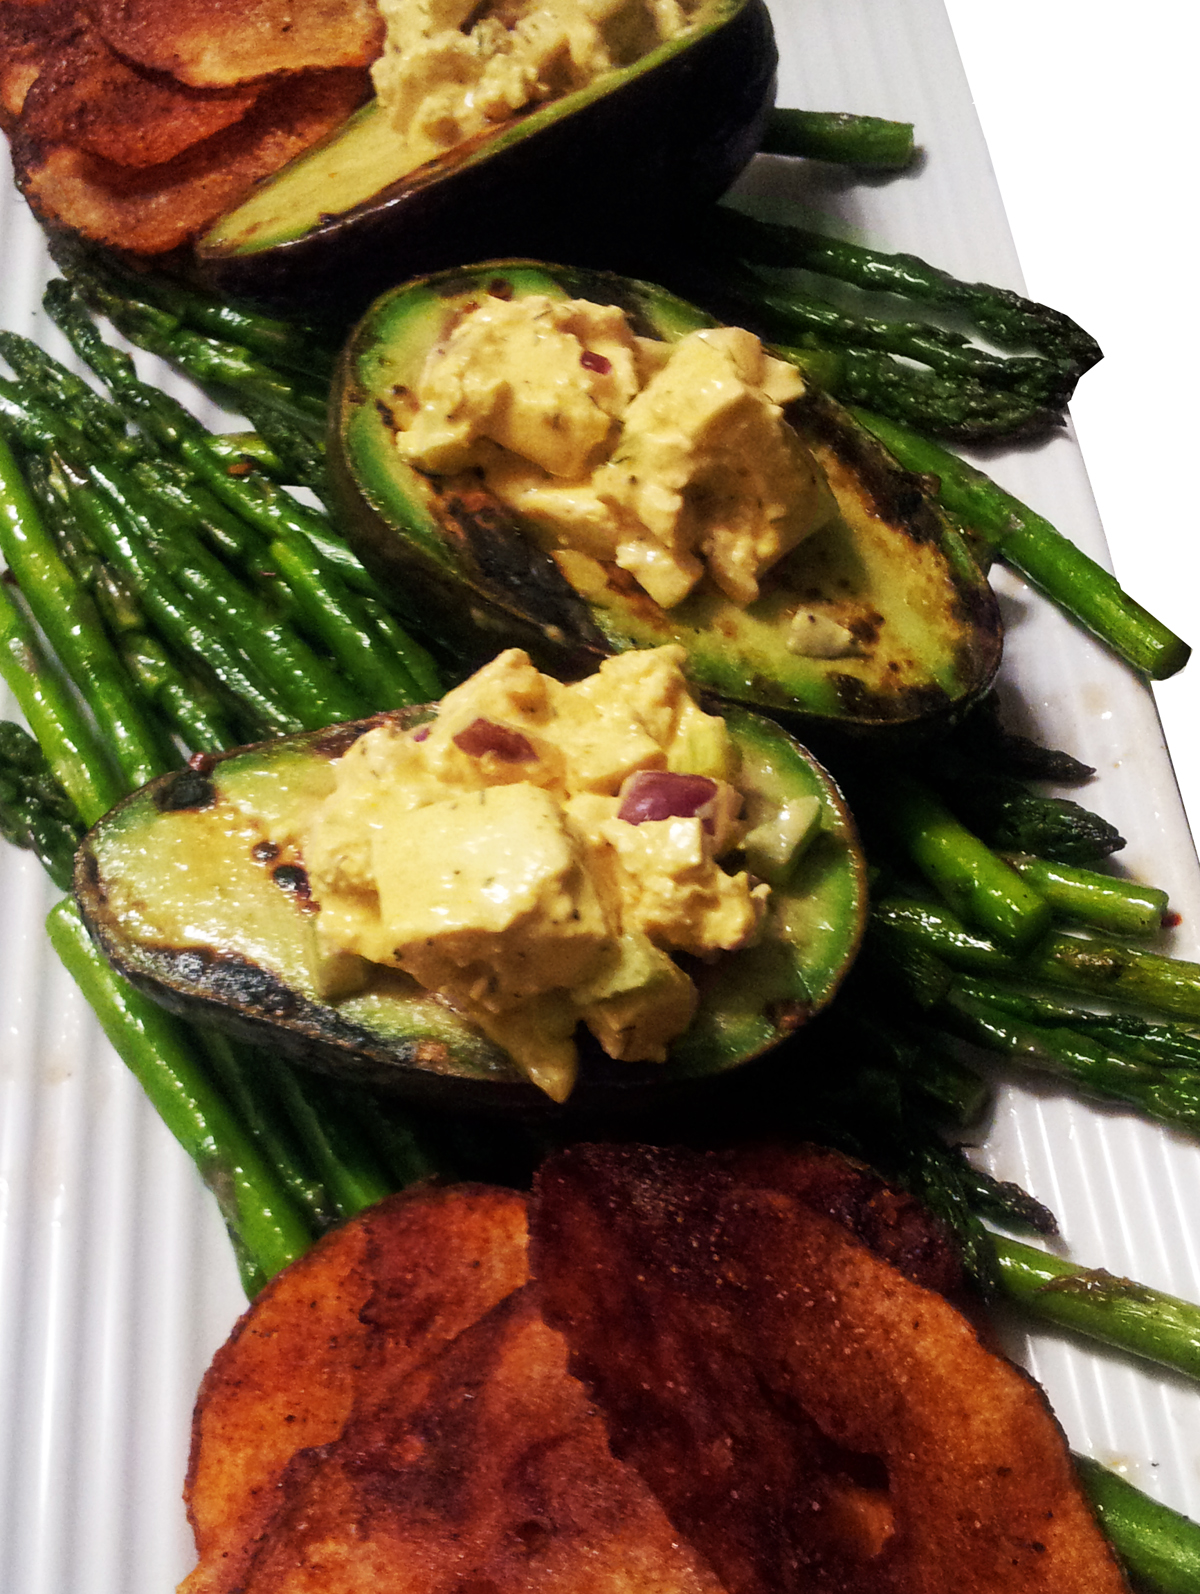 ... : Eggless Tofu Salad in Grilled Avocados, Asparagus & Baked BBQ Chips